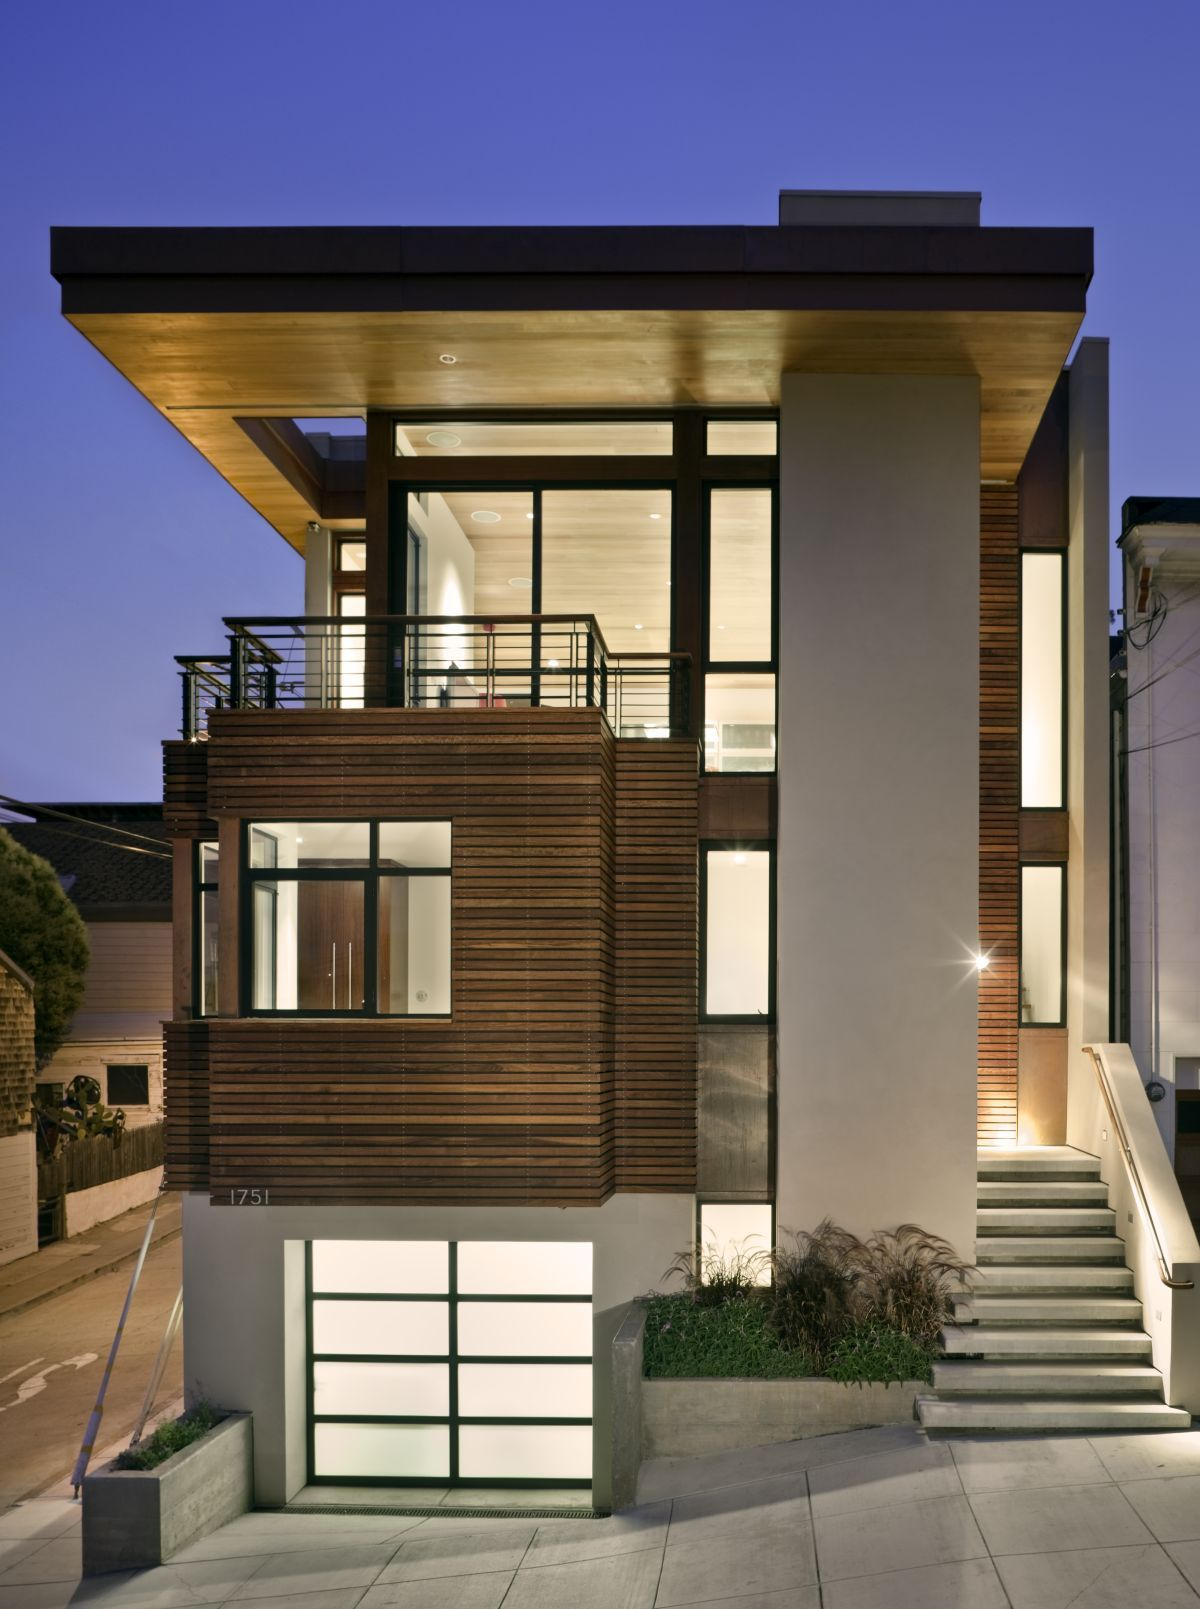 Contemporary Home Exterior Design Ideas | Home Decor | Pinterest ...